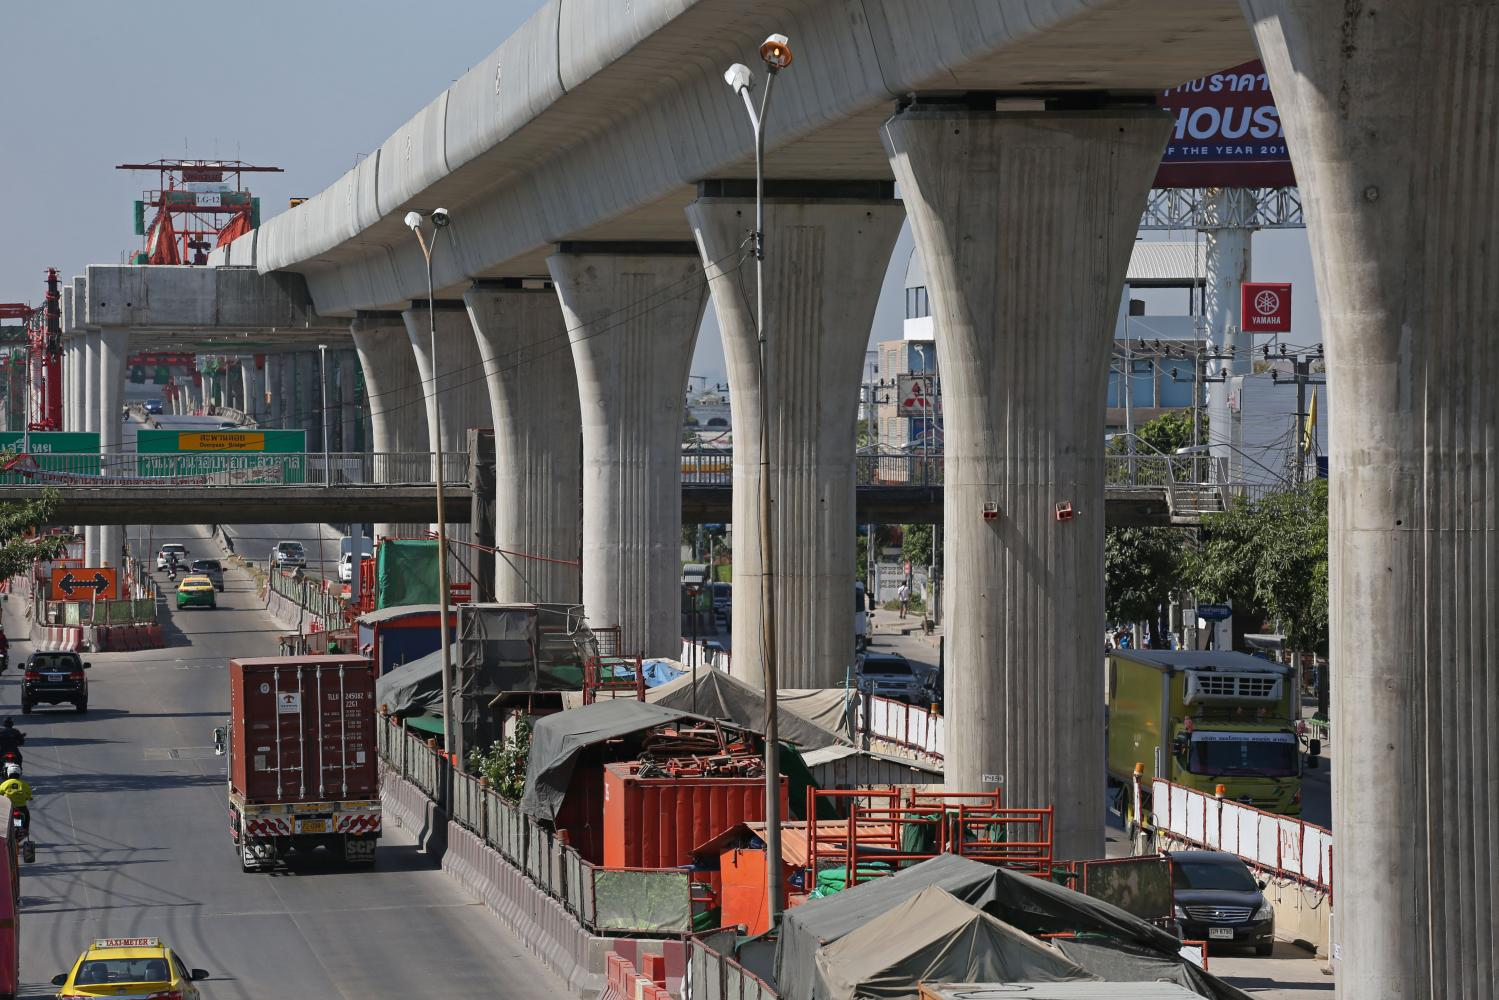 Construction work proceeds on the Orange Line. The fiscal 2021 investment budget is projected at 693 billion baht, or 21% of the total.(Photo by Varuth Hirunyatheb)